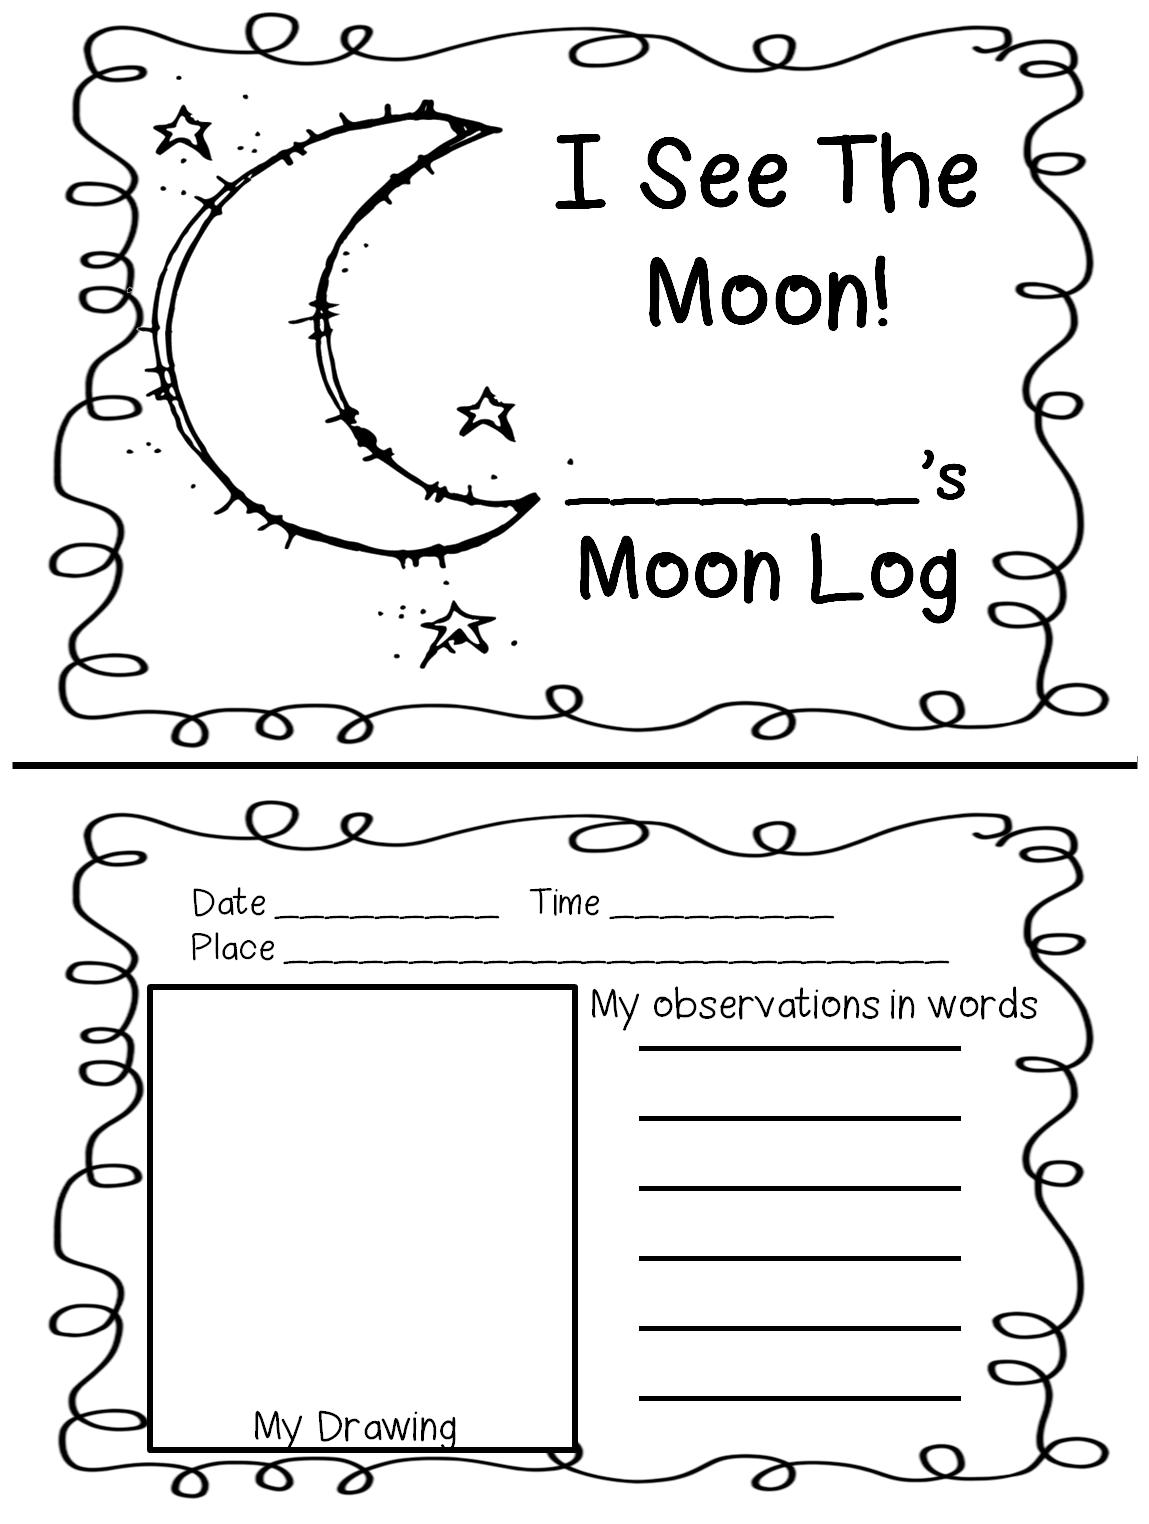 Workbooks weather worksheets for 1st grade : Hello Everyone!! W e are busy finishing up our weather unit and ...